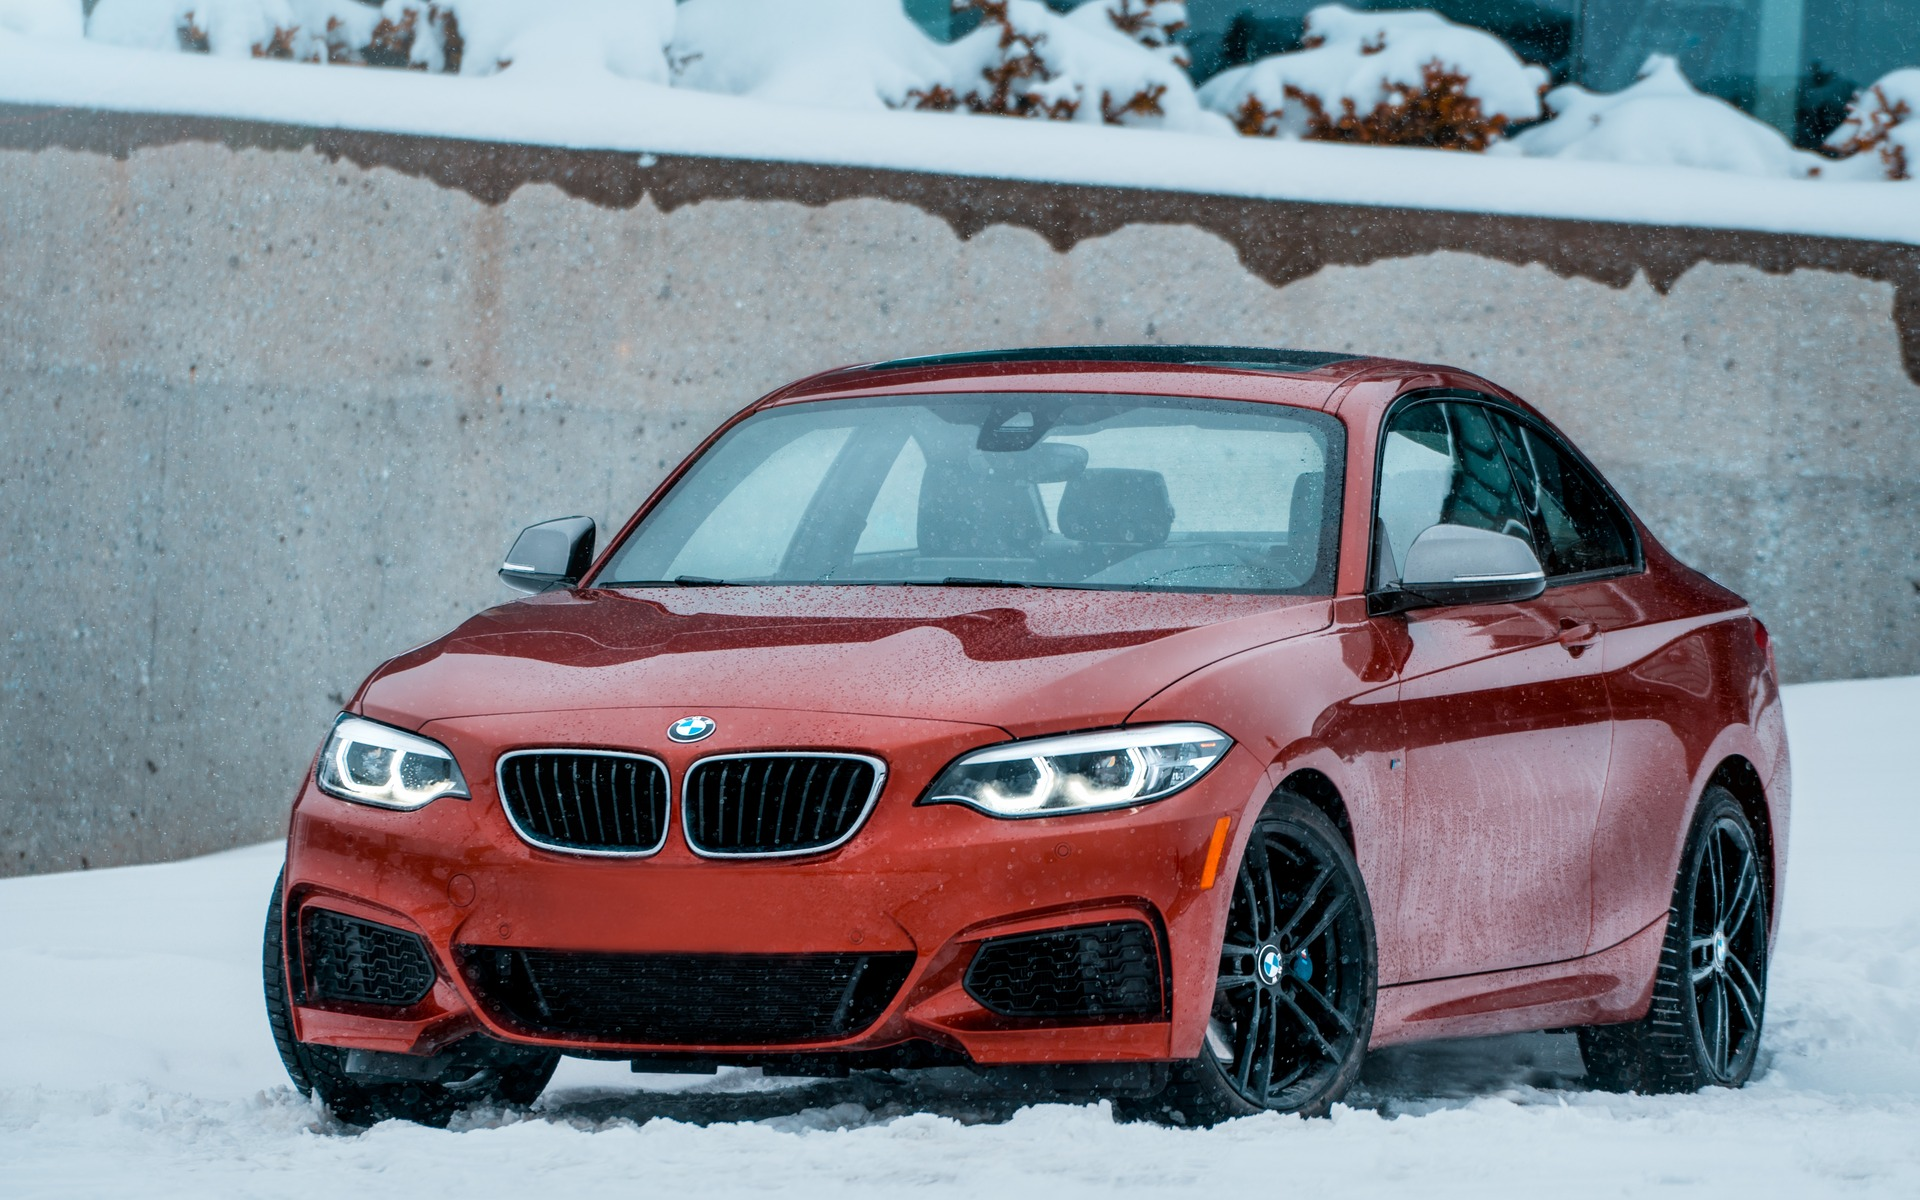 2018 Bmw M240i The Way Things Were Meant To Be The Car Guide